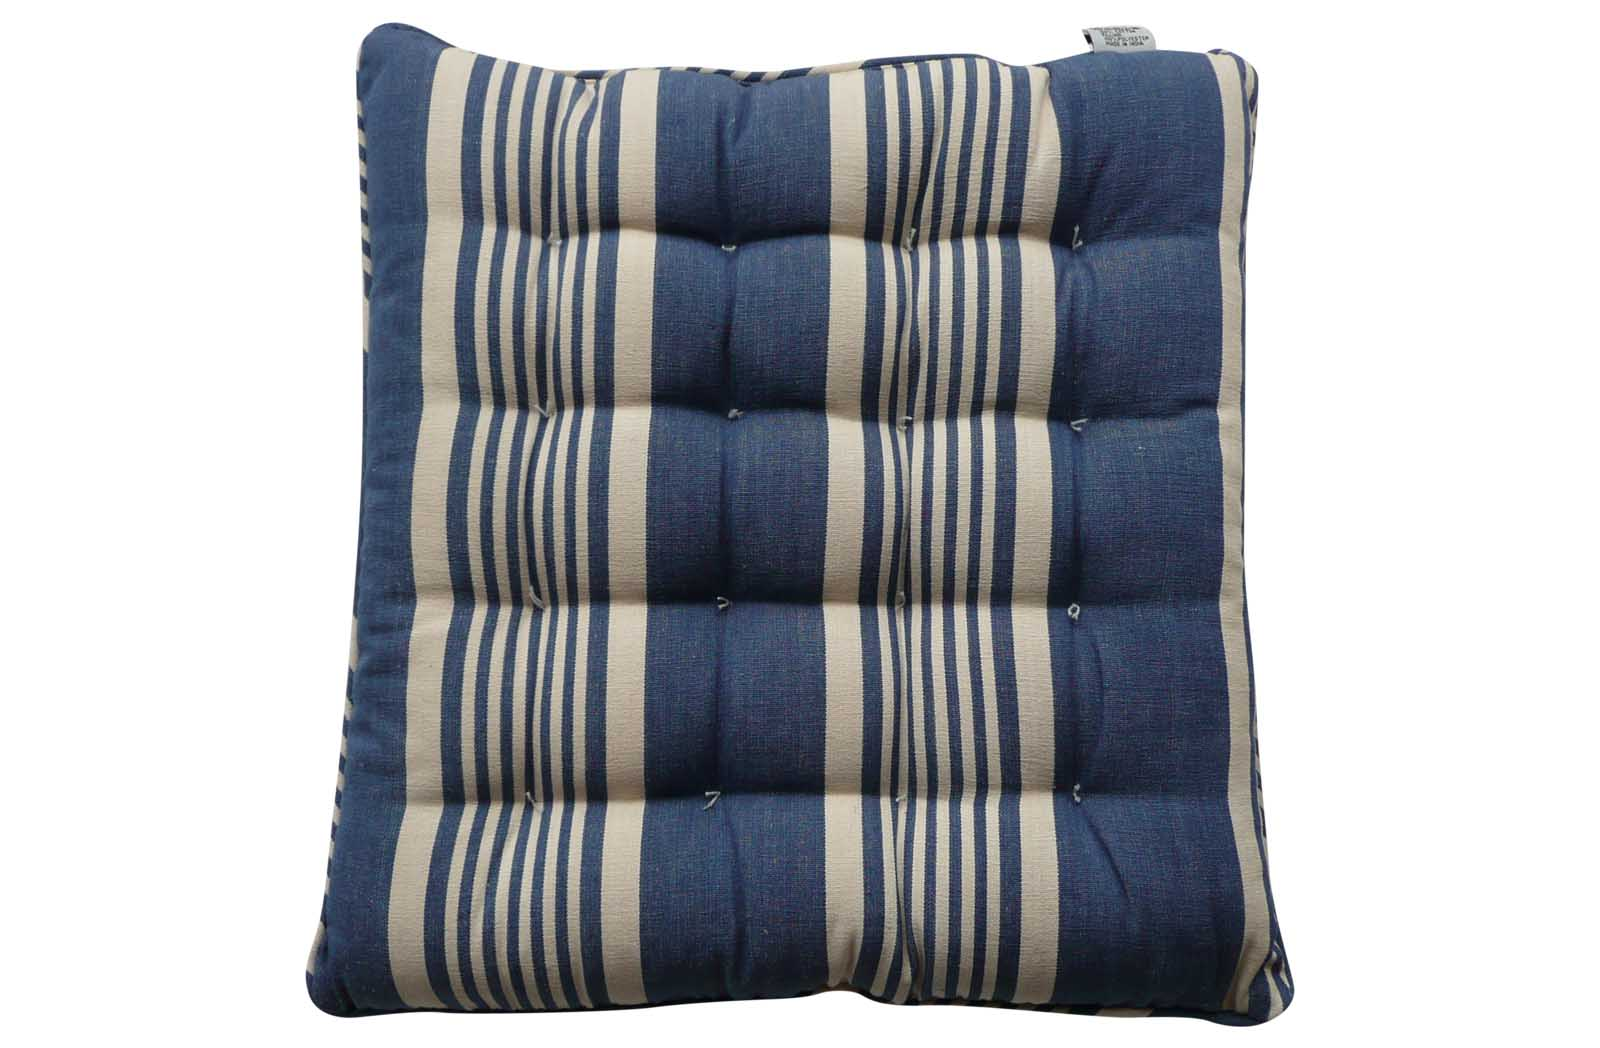 Striped Seat Pads with Piping navy, ivory, blue